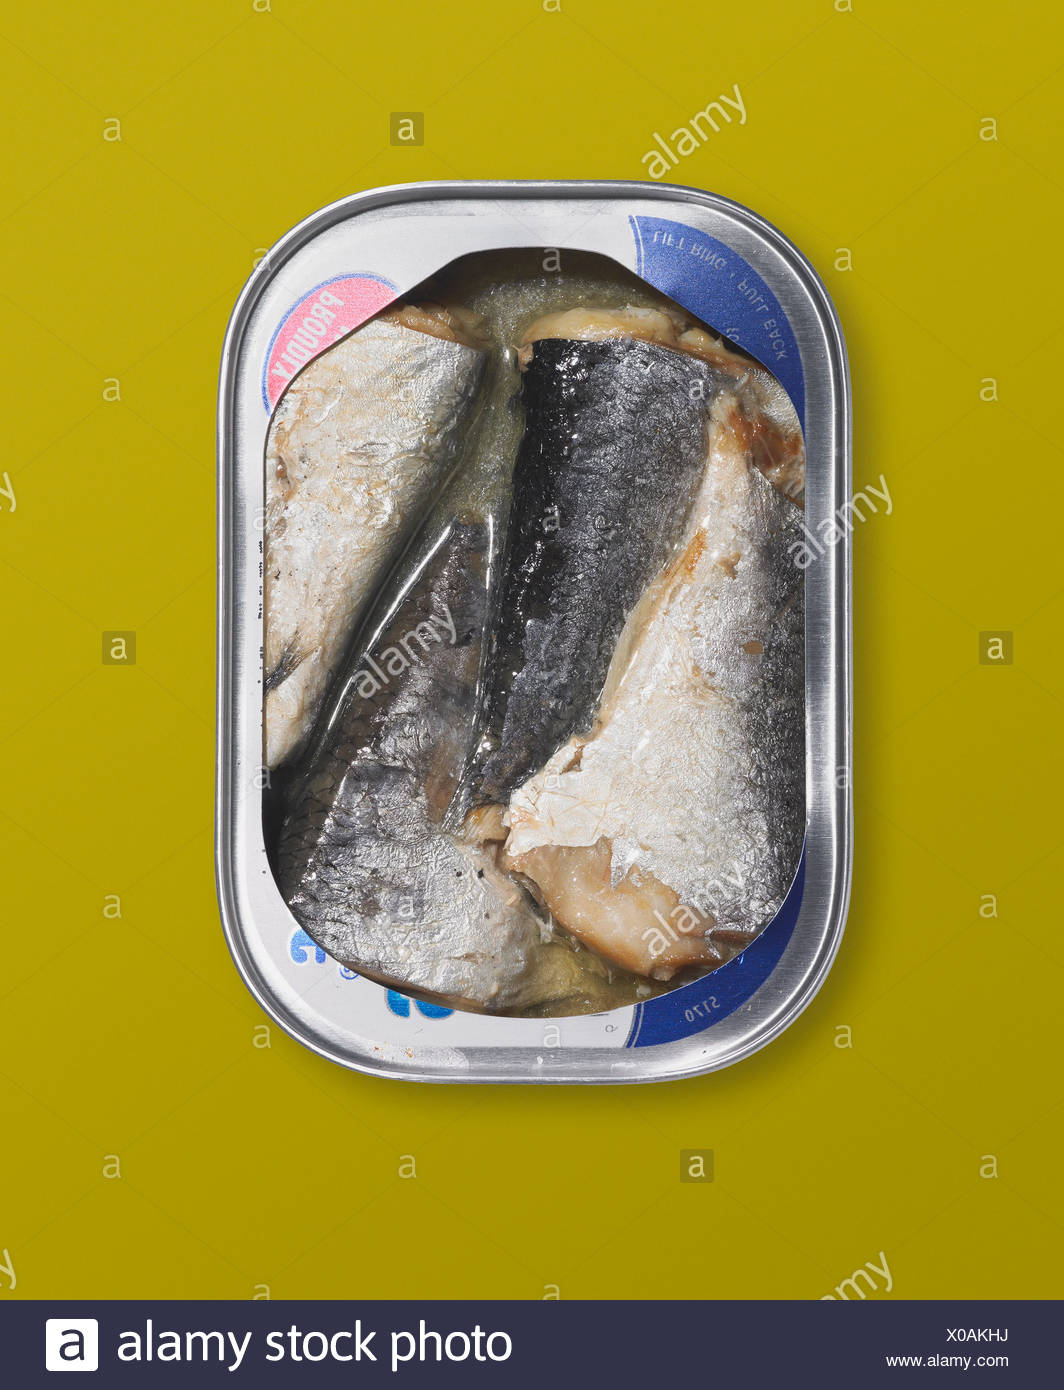 Canned herring on a yellow background - Stock Image